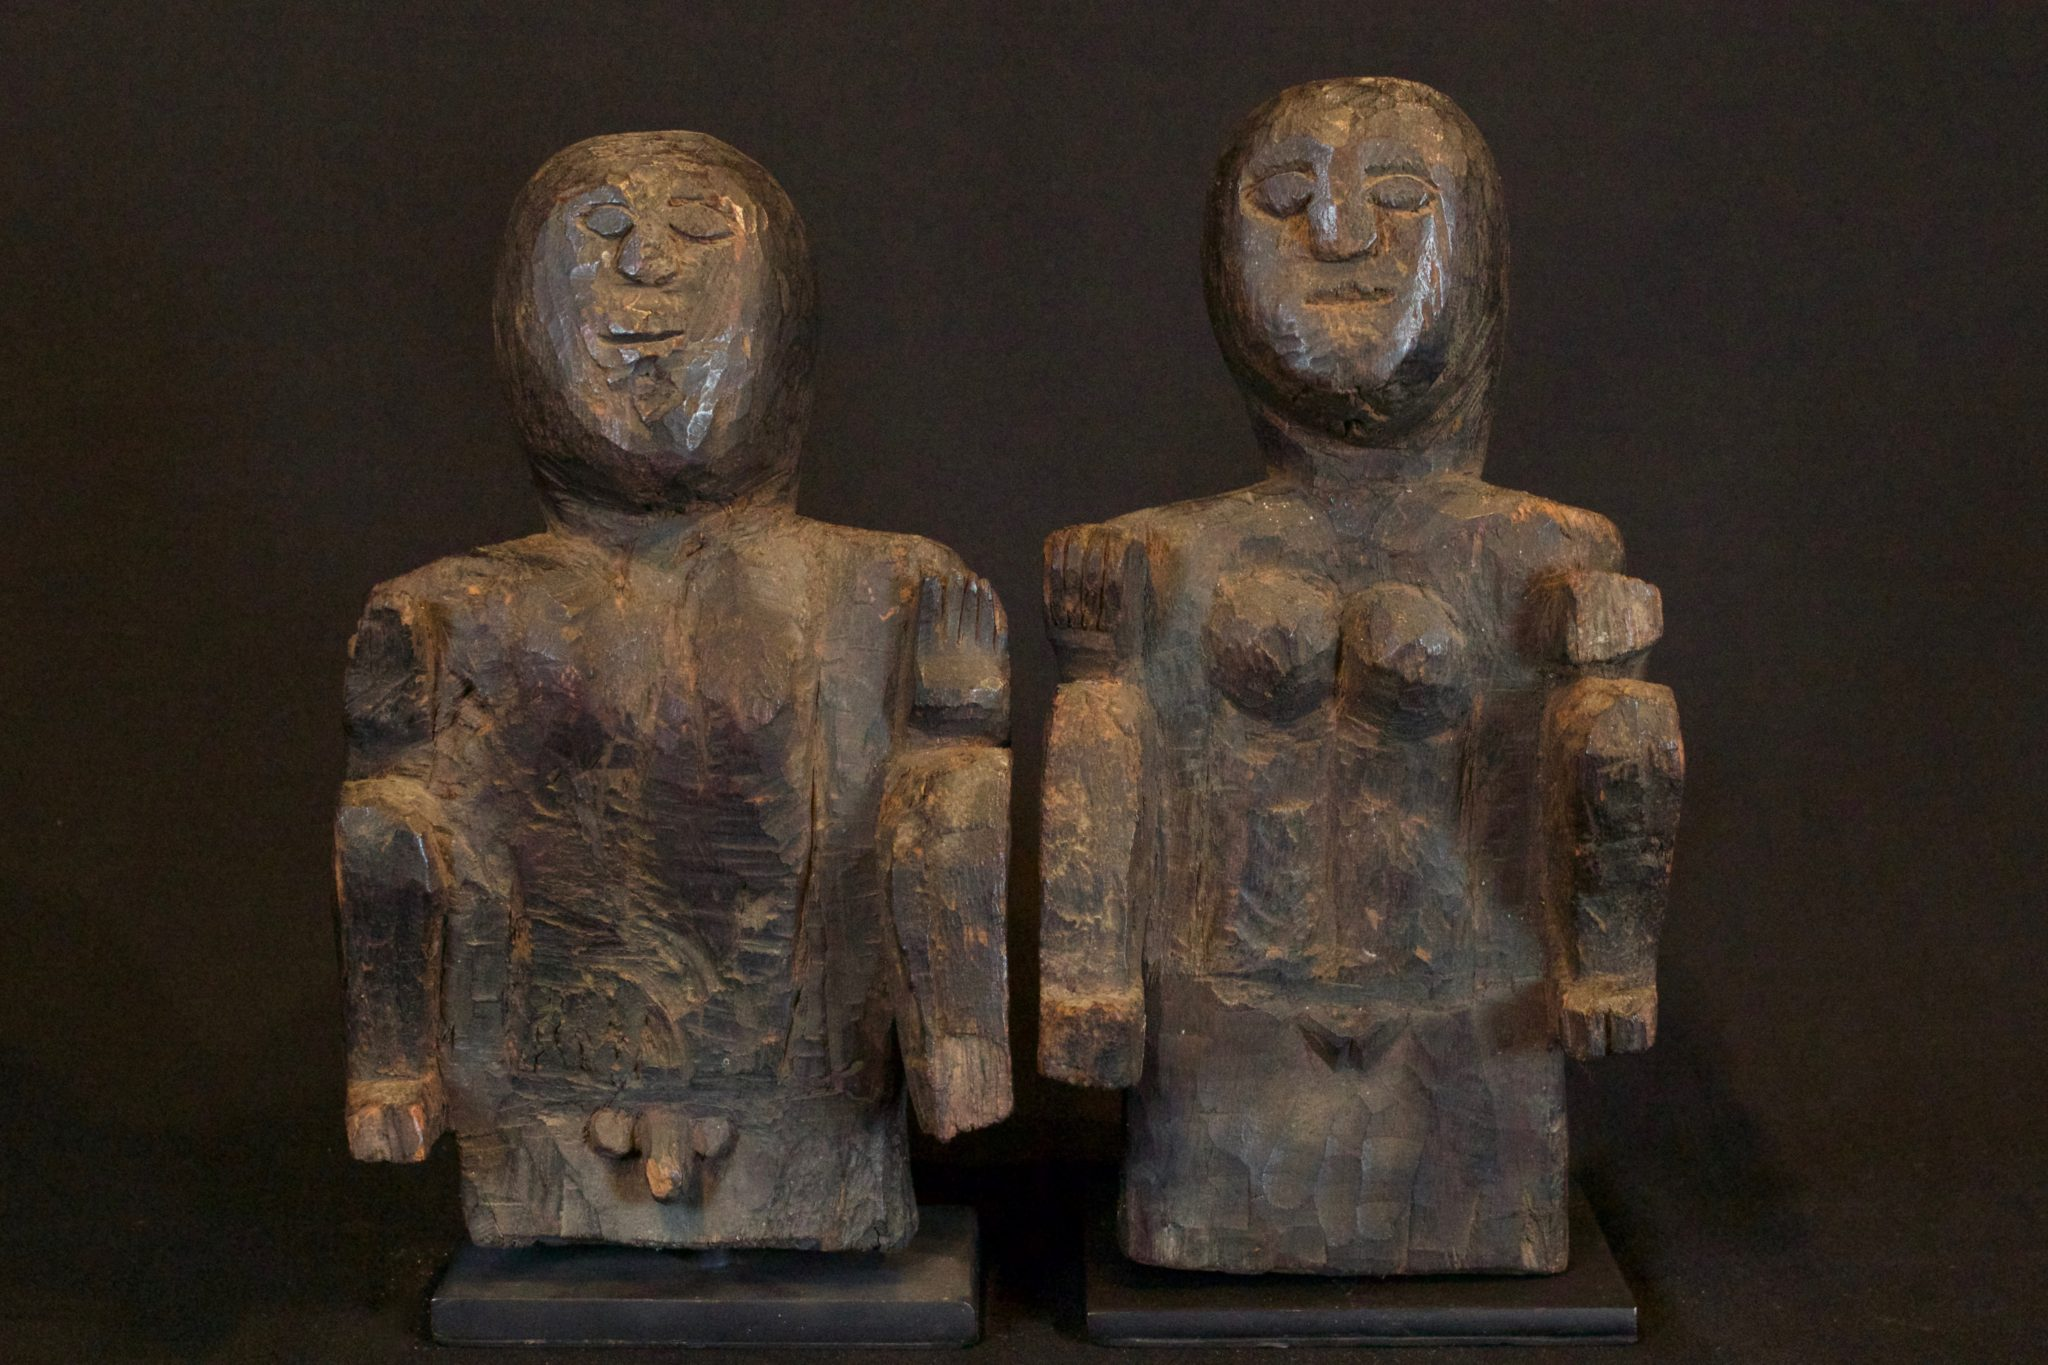 """Ancestral Offering Figures, Timor Island, Lesser Sunda Islands, Indonesia, Anakalang tribe, Early to mid 20th c, Wood. Used by shaman for healing rituals. (left, male fig - 8 ½"""" x 5"""" x 3 ½""""); (right female fig -9"""" x 4 ¾"""" x 4""""), $875. (sold as pair)"""